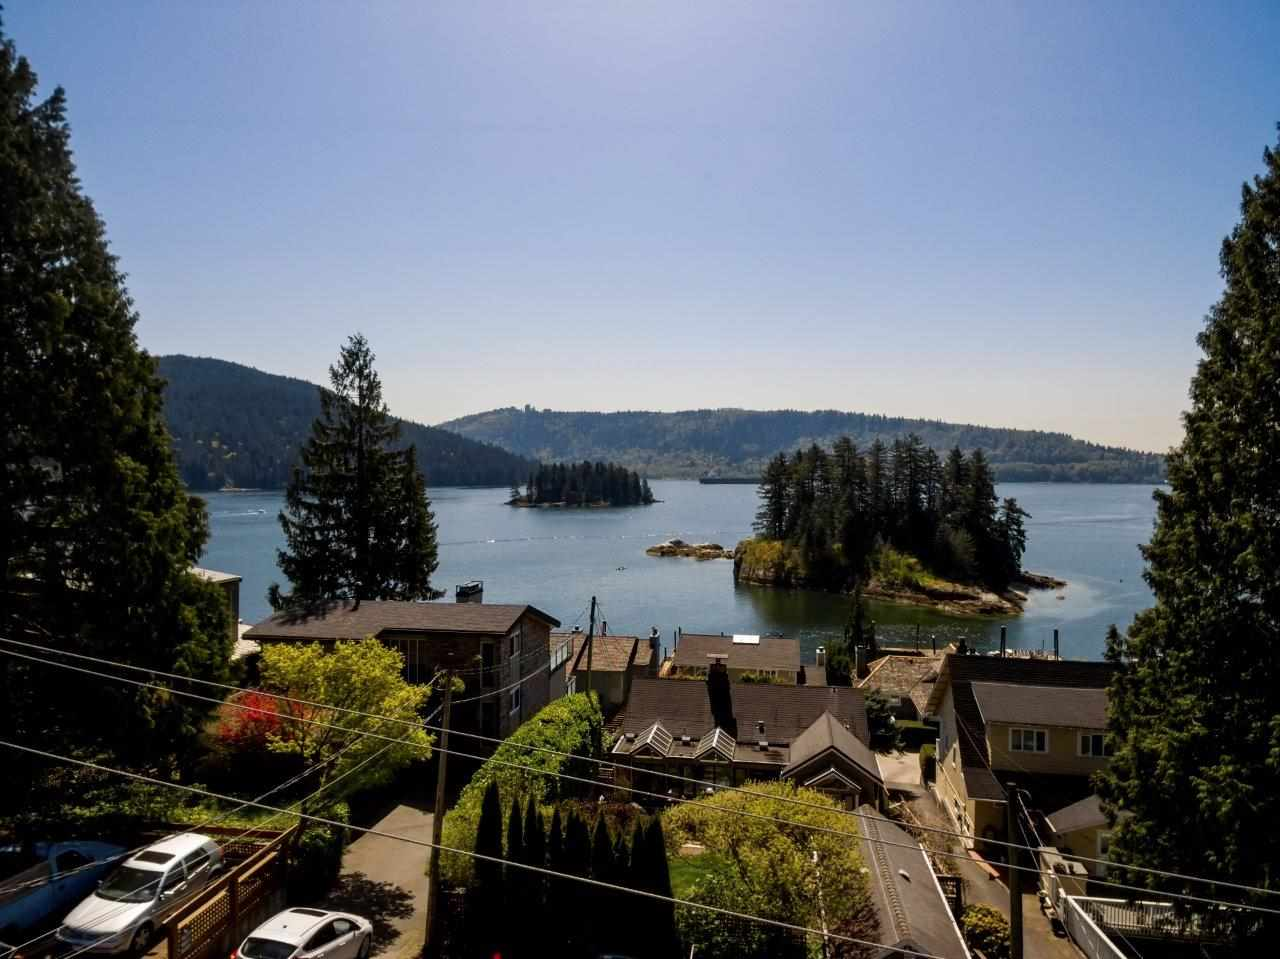 "The best of Deep Cove with stunning views, sunny southern exposure, high-quality upgrades and a 2 minute stroll to the best beach around! This is one of my favourite ""Cove"" locations as it is tucked away and close to everything you love about living here, with easy walking distance to both school levels and the best parks and walking trails. This home is all about lifestyle! The renovations in this unique and architecturally designed home are exquisite, with a beautiful open kitchen that opens up to living and dining area on main floor with gas fireplace and massive sunny deck. The Master suite is an incredible oasis of tranquillity, with fabulous views and a spacious newer ensuite bathroom that must be seen! Downstairs could easily be suited and has a separate entrance or keep for family or teen room. With plenty of storage throughout for your bikes and paddle boards, this awesome home even has a sauna and hot tub to relax and unwind in after you play outdoors! This truly is a one of a kind Deep Cove Oasis!"